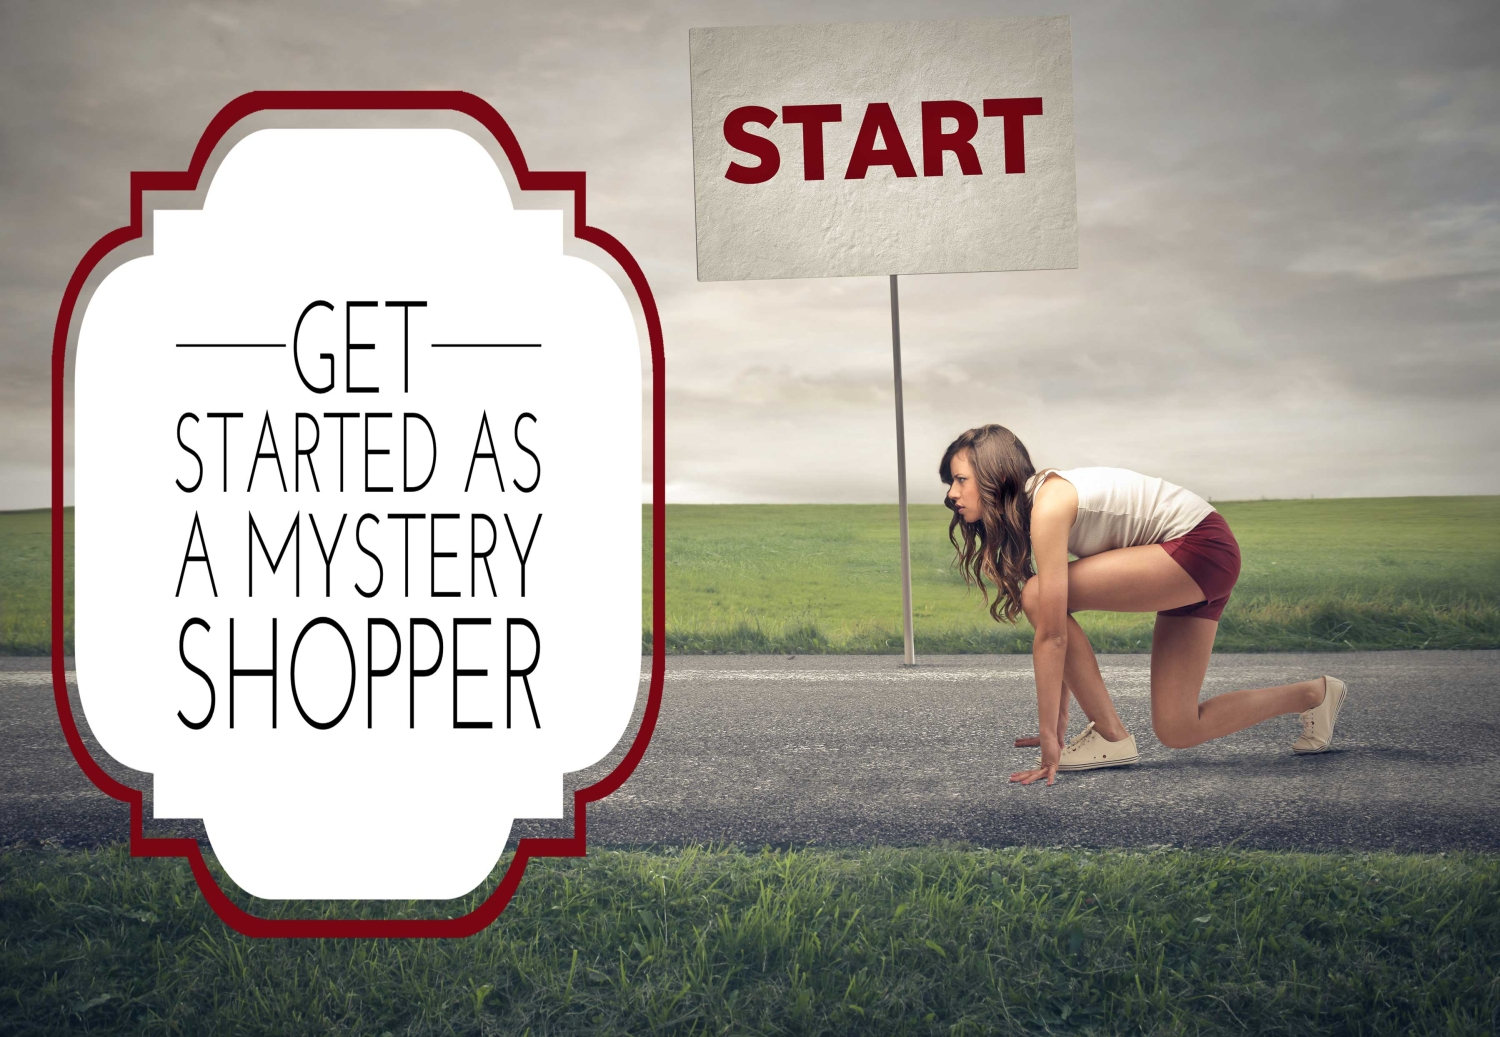 get-started-as-a-mystery-shopper